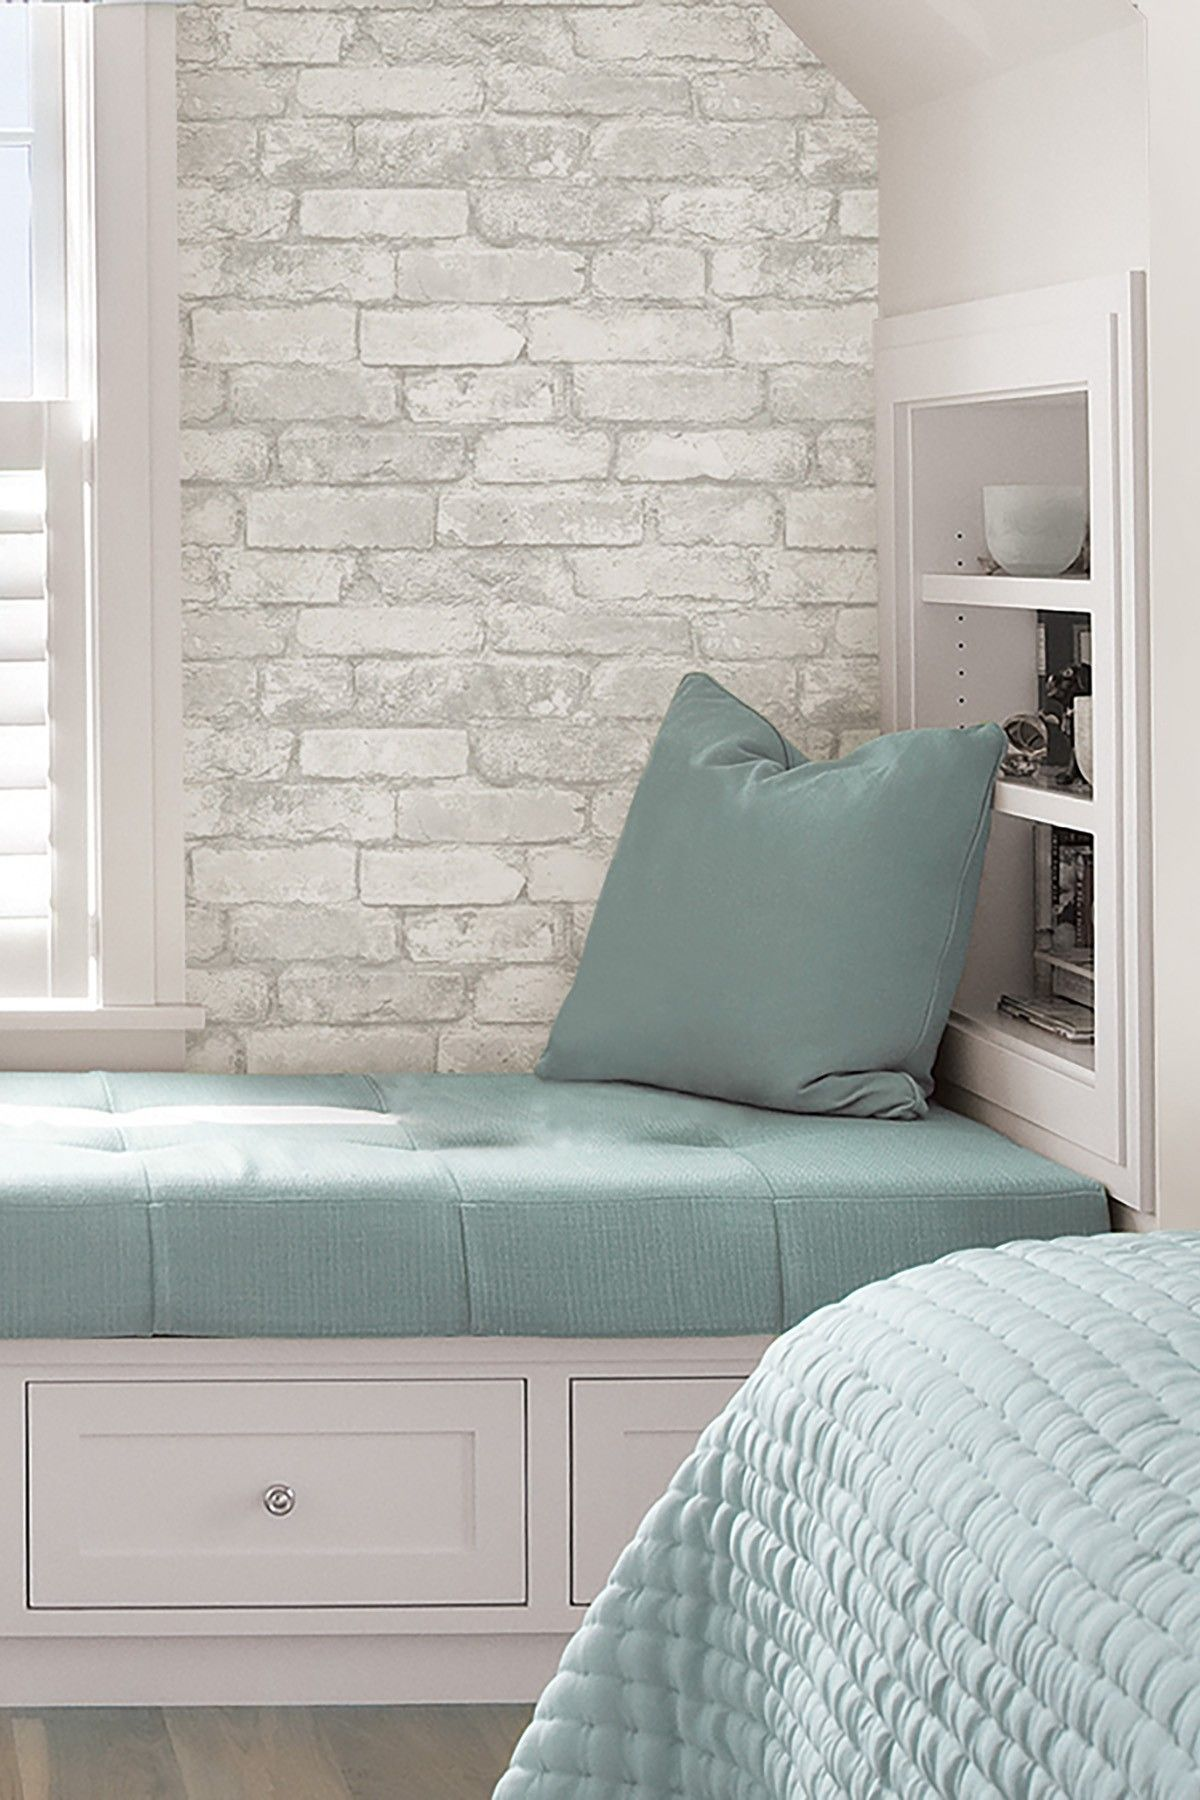 Create An Elegant Statement With A White Brick Wall Bedroom